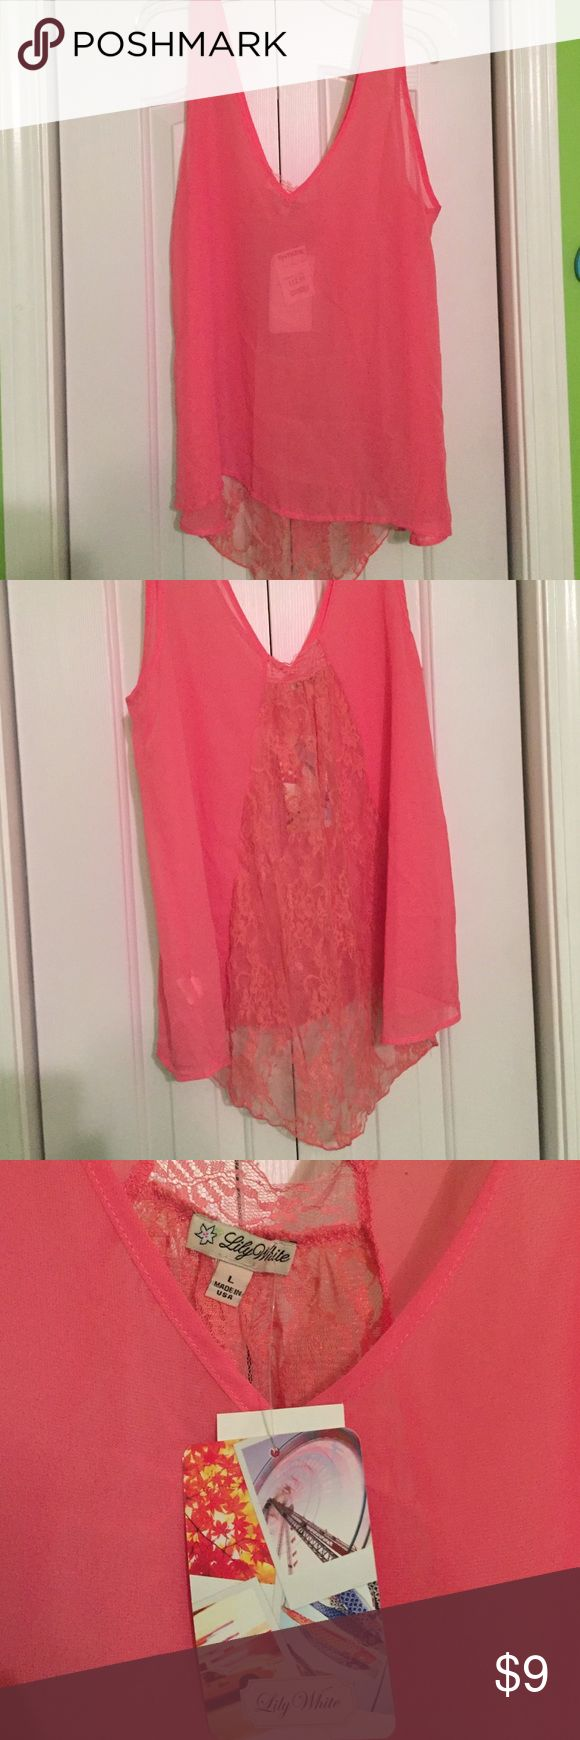 V-Neck See Through Tank Top V-neck pink tank top with a lace see through back. Never been worn. Still has the tags on it. Size L. Lily White Tops Tank Tops